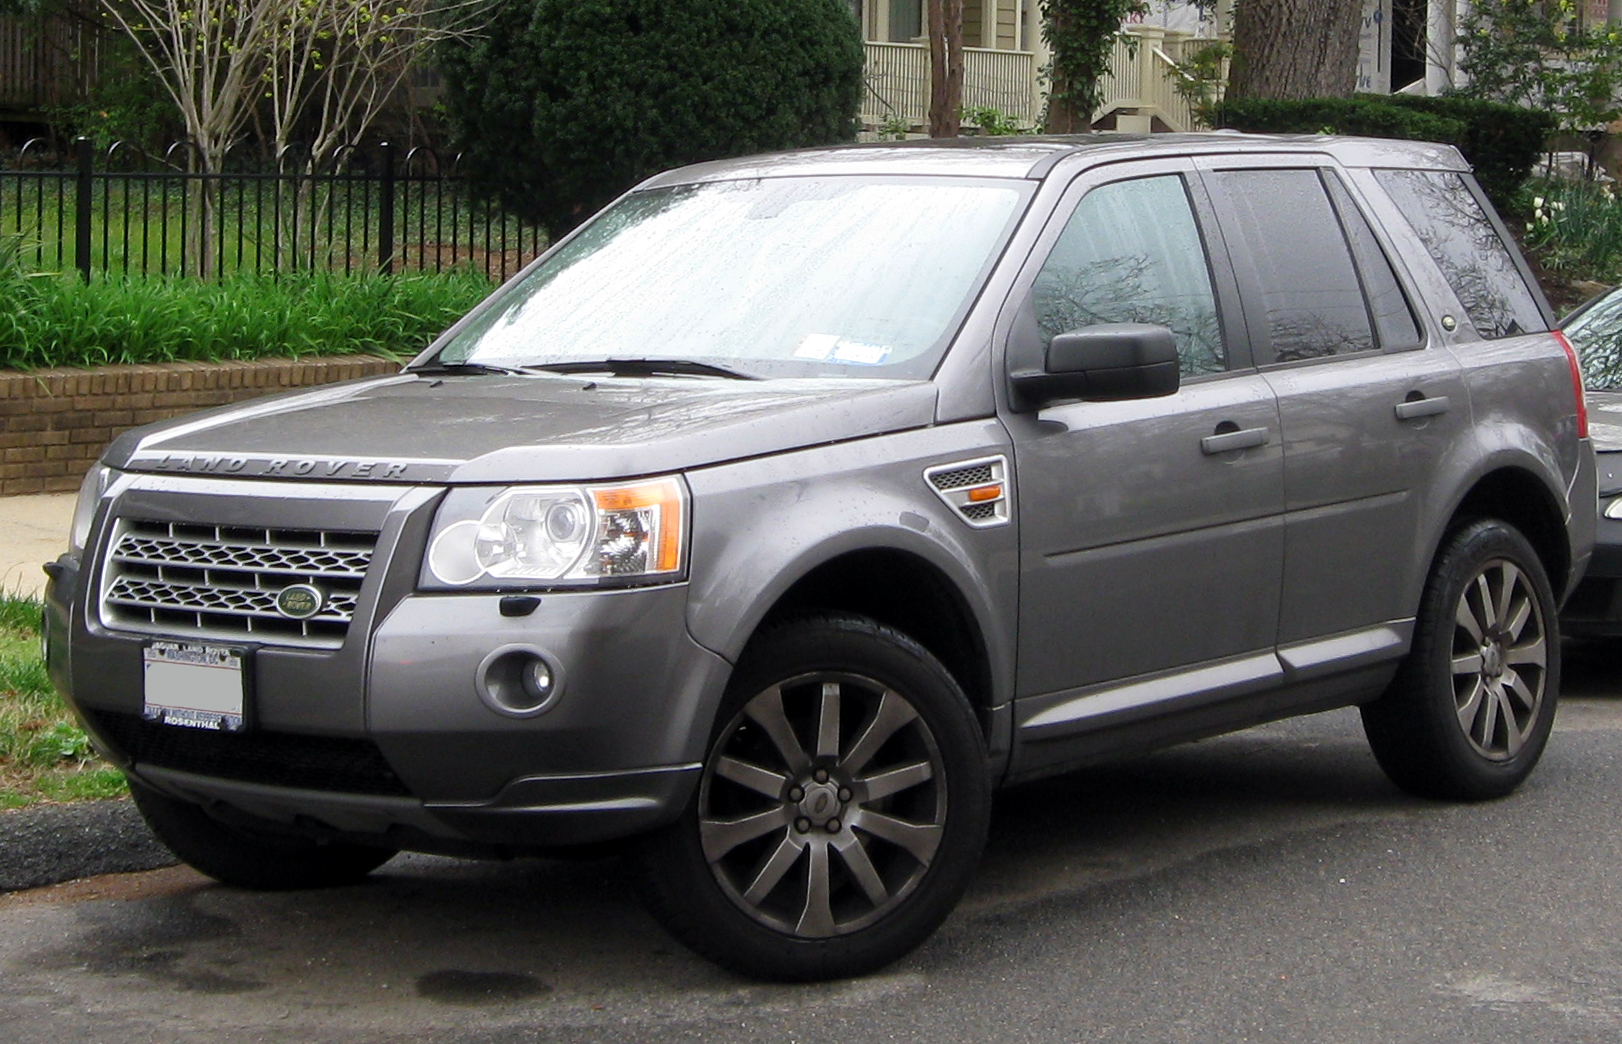 hyundai used amazing for at rover drummondville details land landrover sale